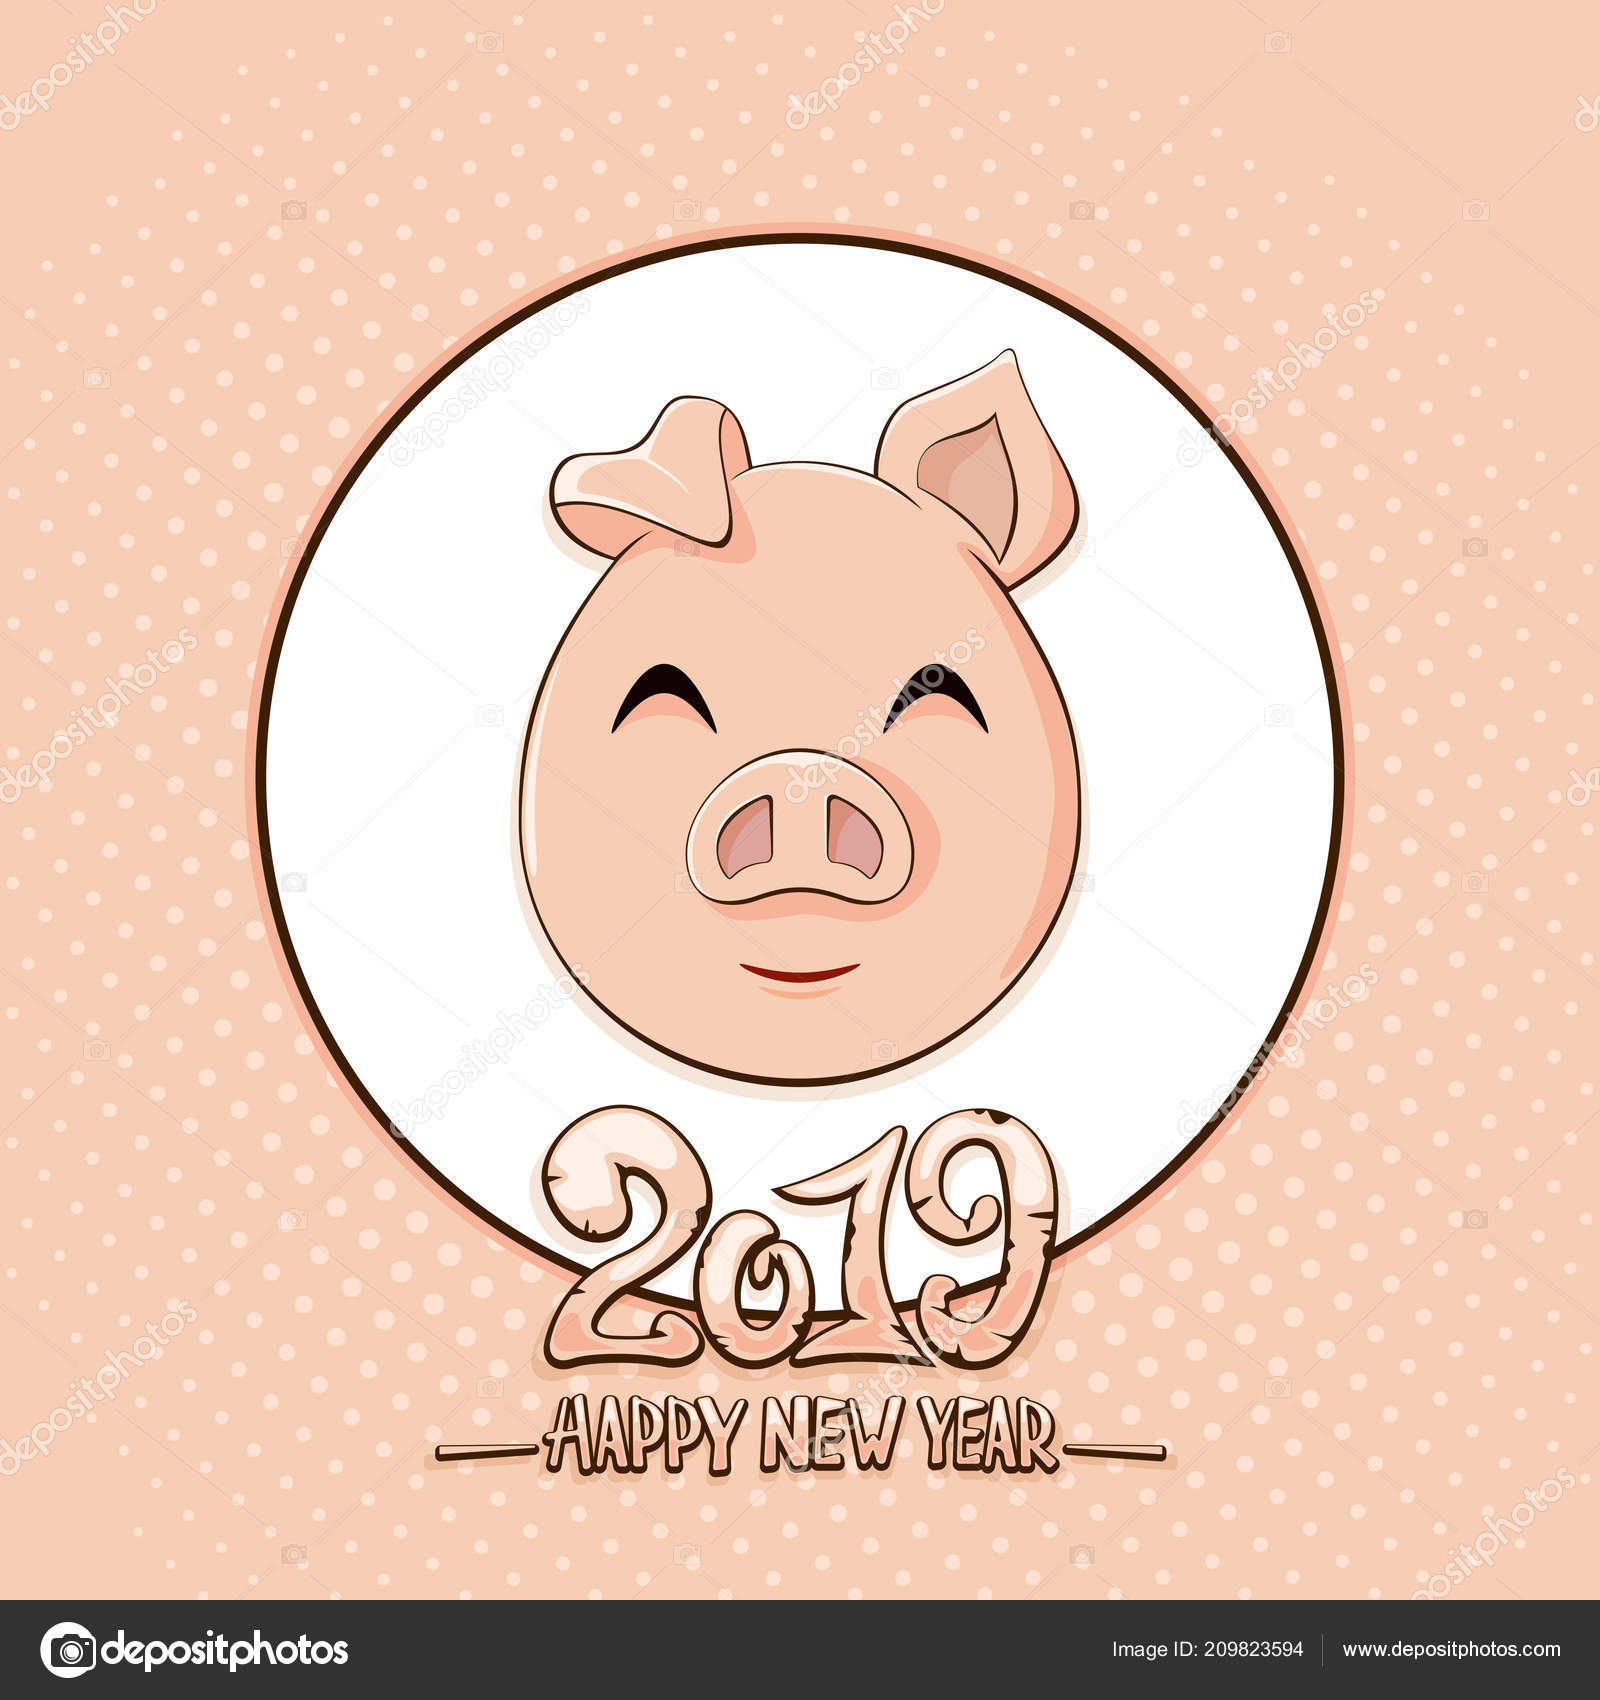 text happy new year 2019 cute little pig pink background stock vector